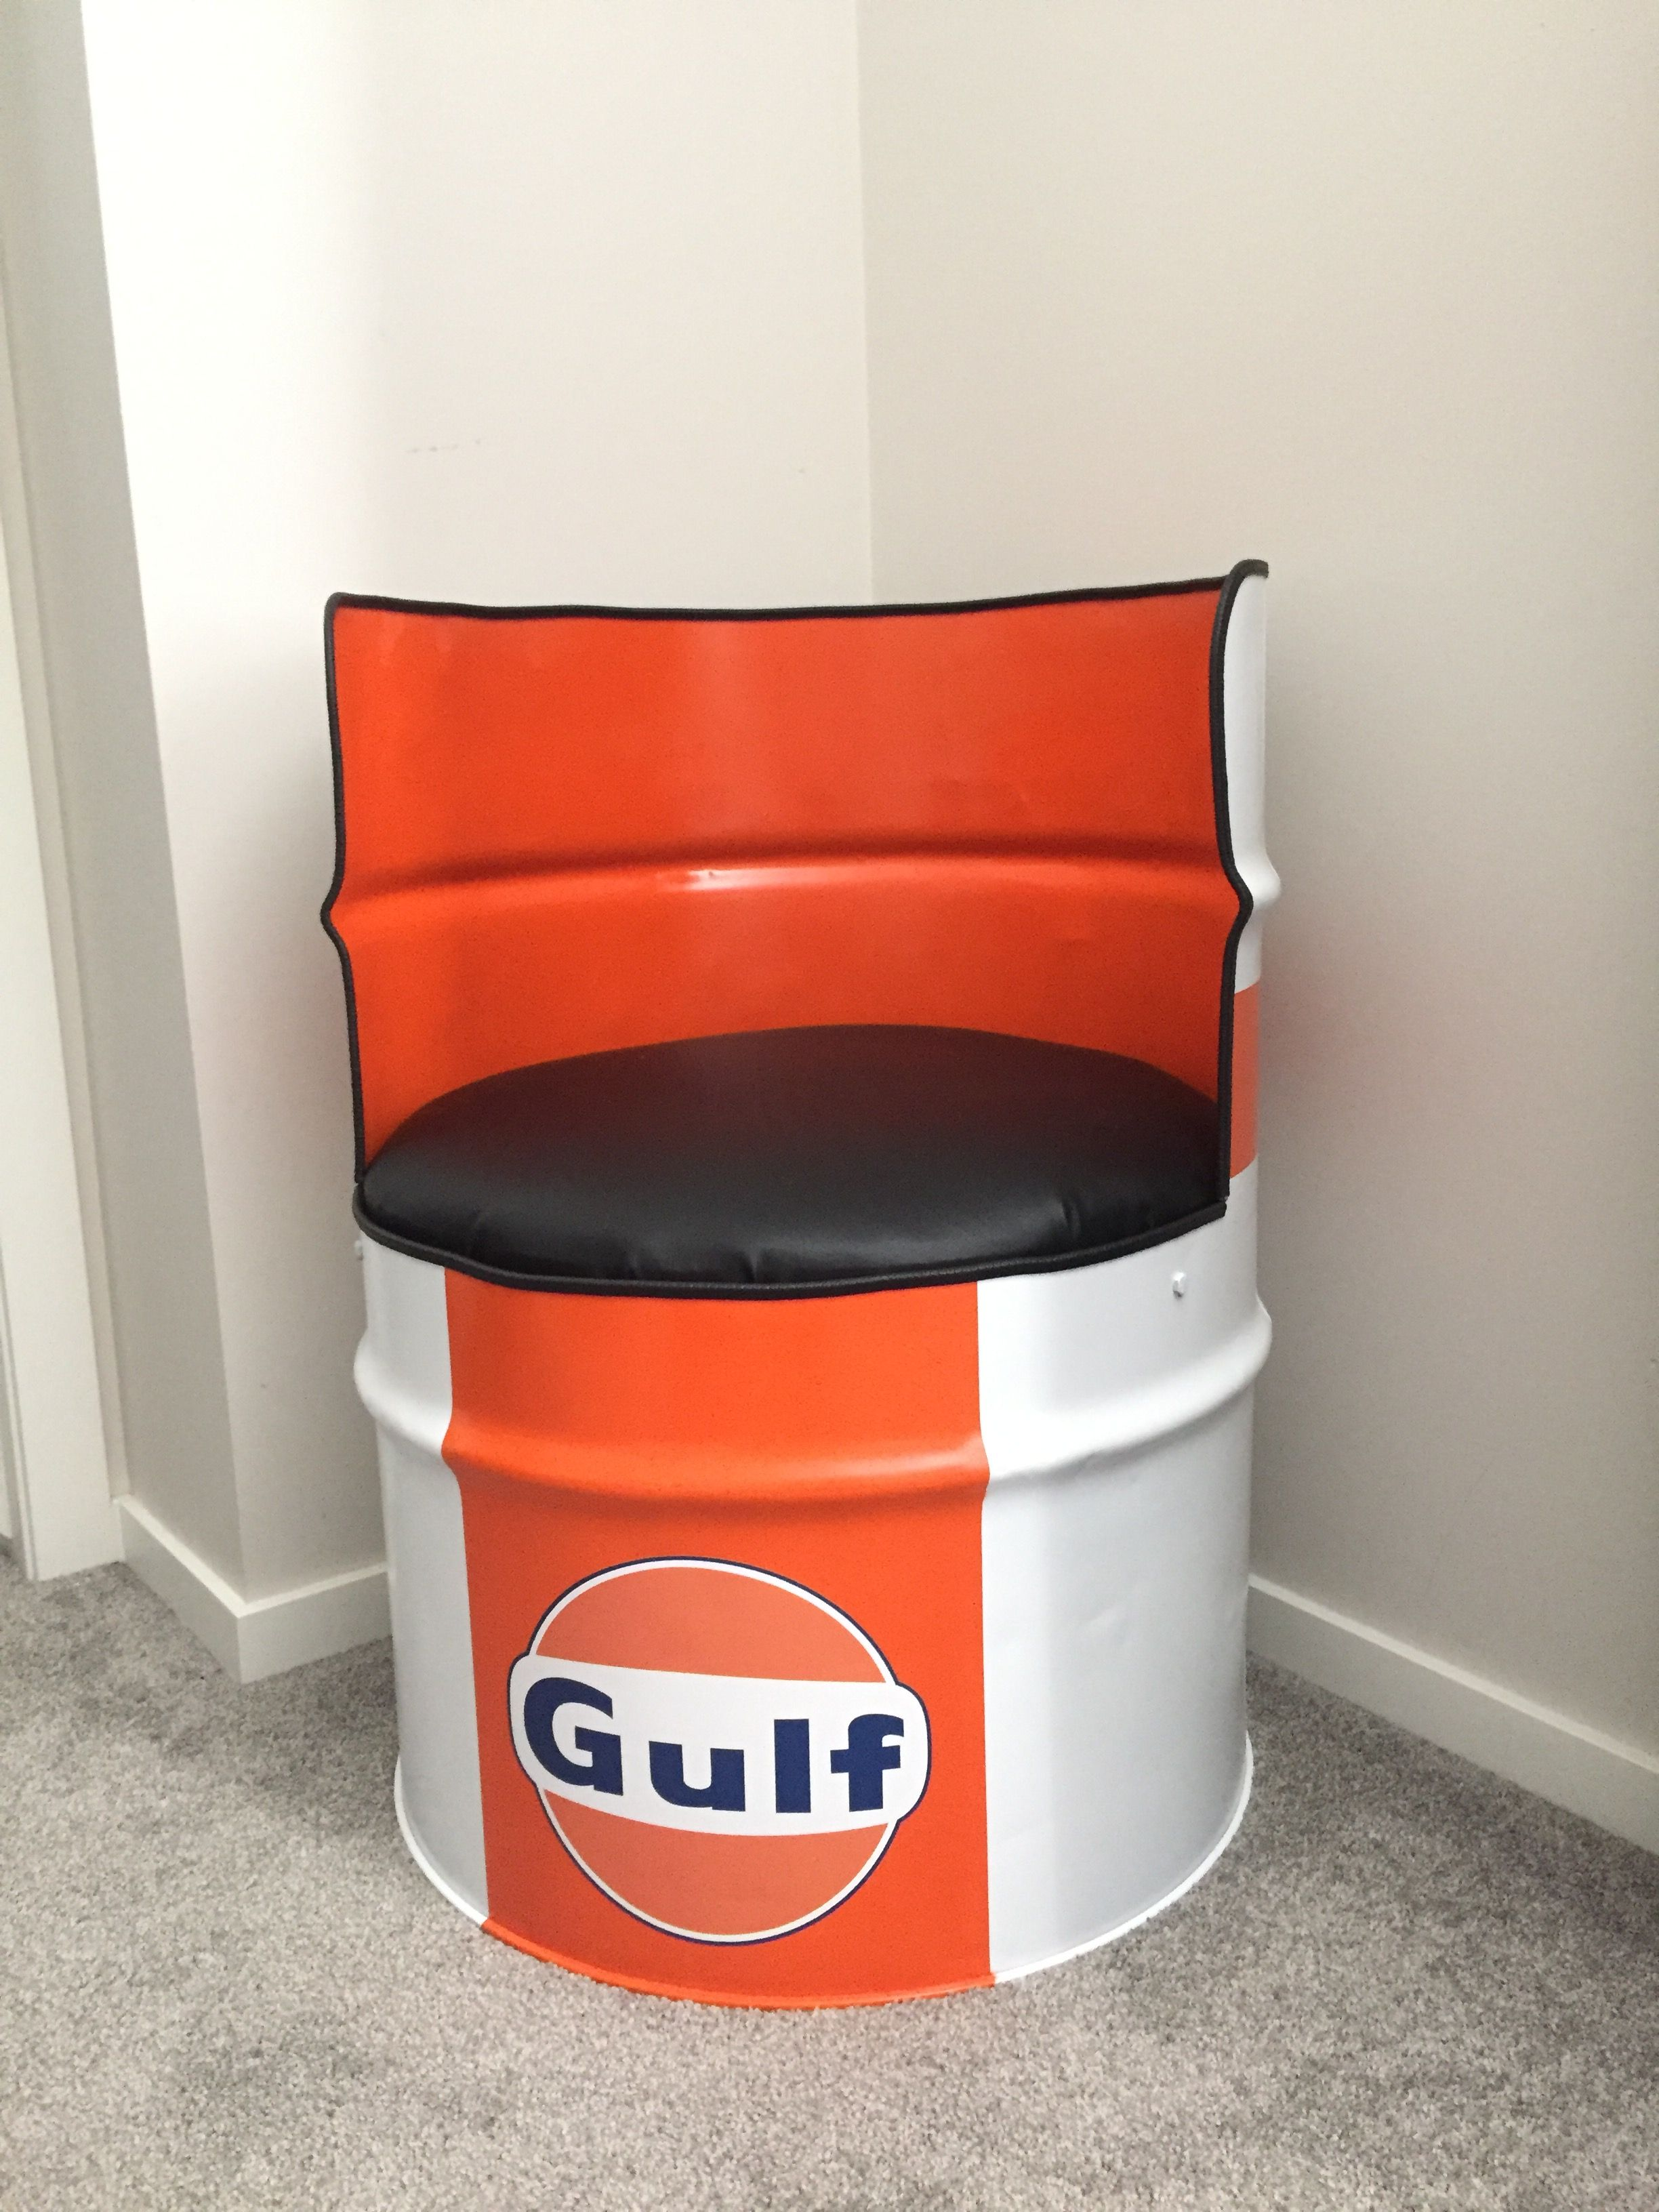 Etonnant 55 Gallon Drum Chair. I Just Finished Making It! I Love How It Turned Out!